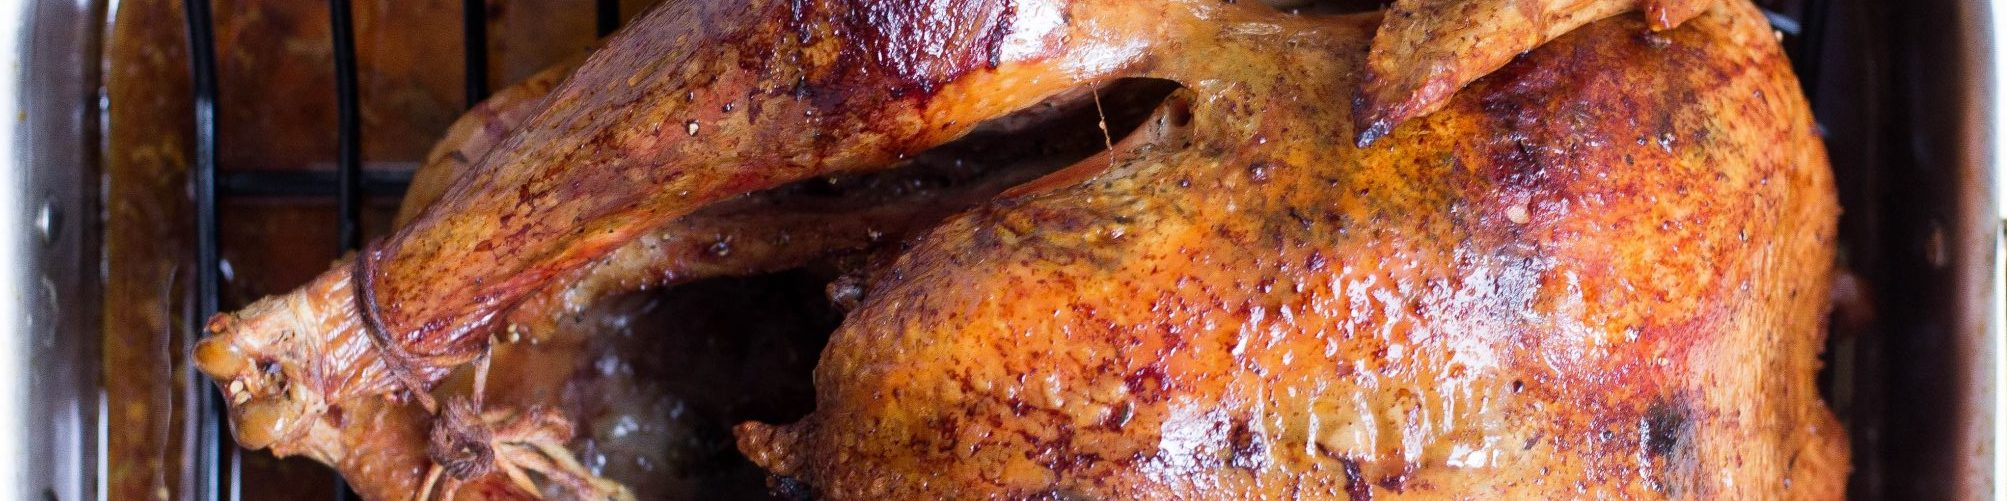 Close-up of a cooked Thanksgiving turkey.